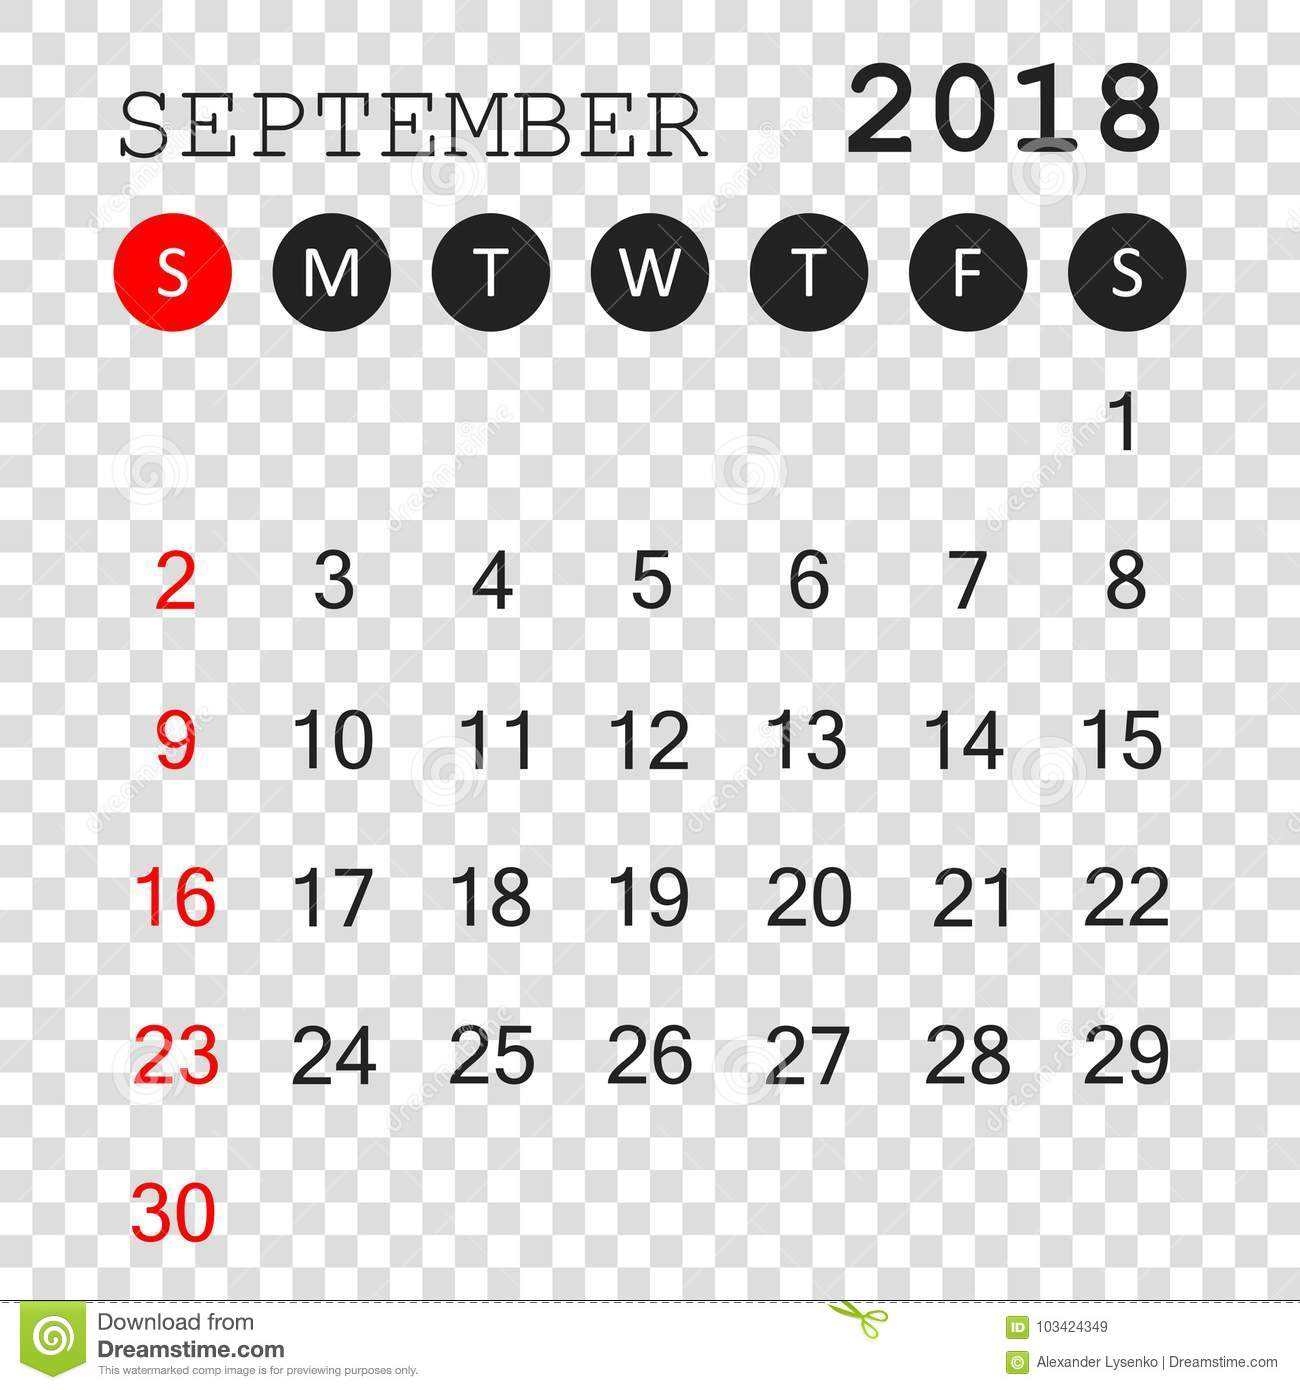 september 2018 calendar calendar planner design template week